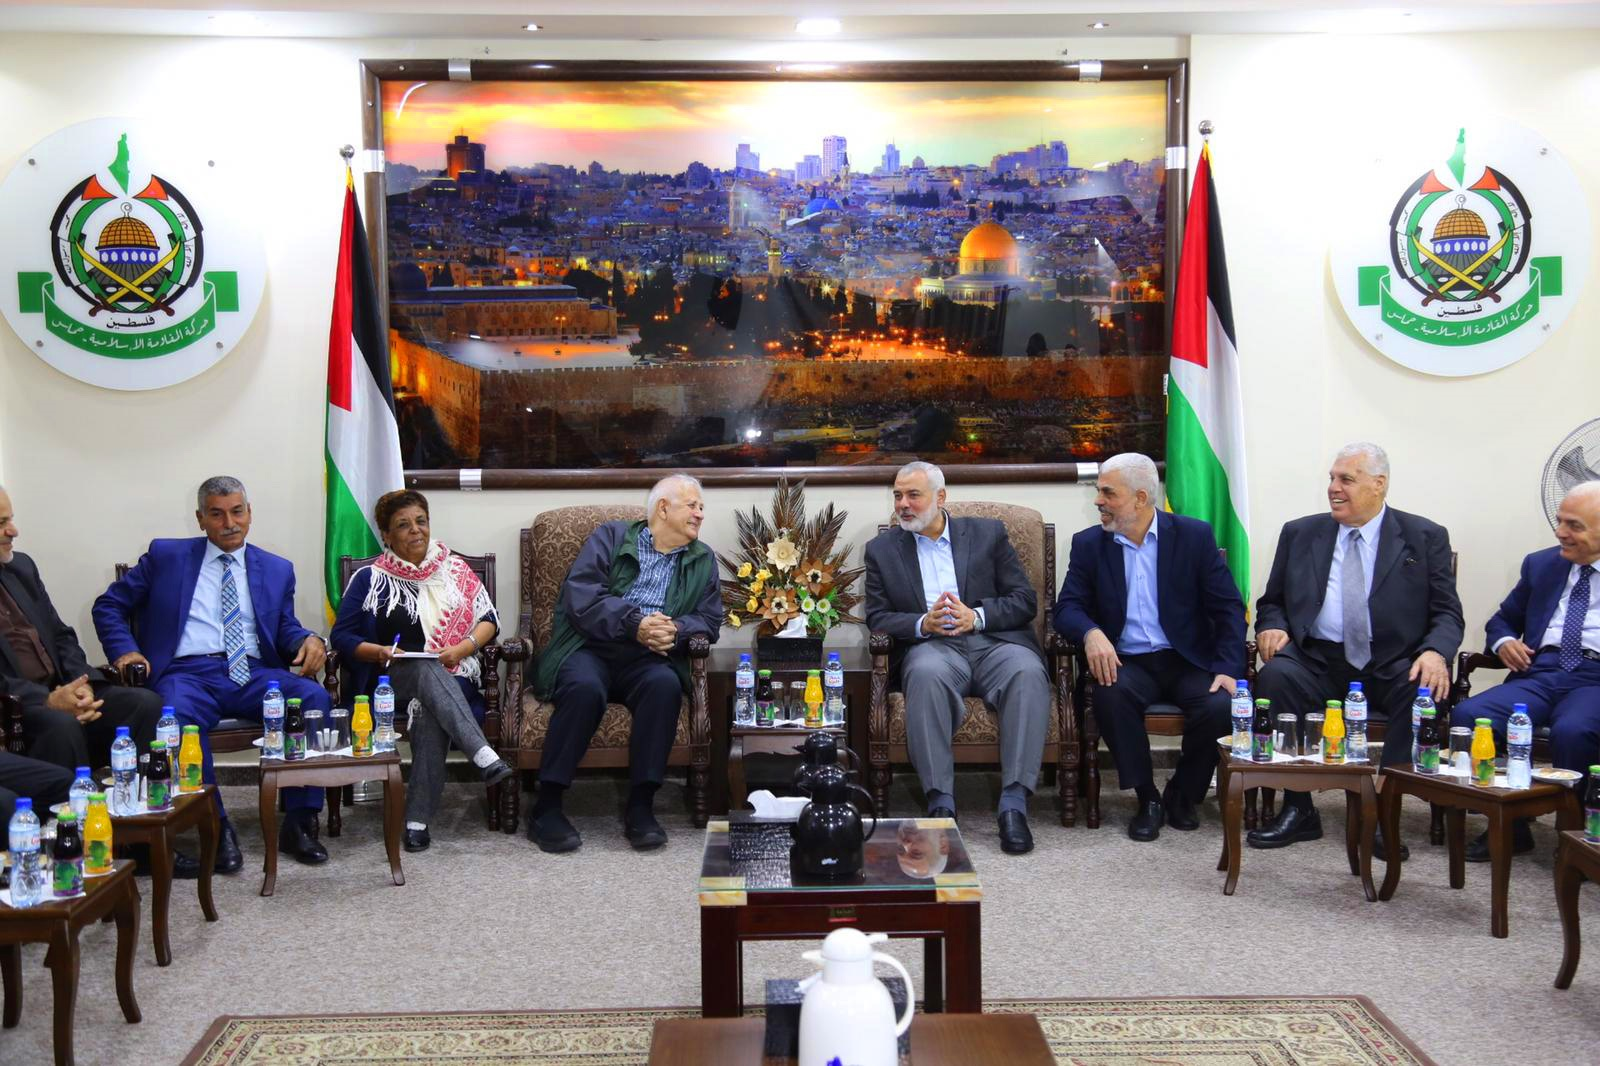 Hamas Chief Ismail Haniyeh meets with Chairman of the Palestinian Central Election Committee Hana Naser, in Gaza City, Nov. 3, 2019. (Hassan Jedi/Flash90)